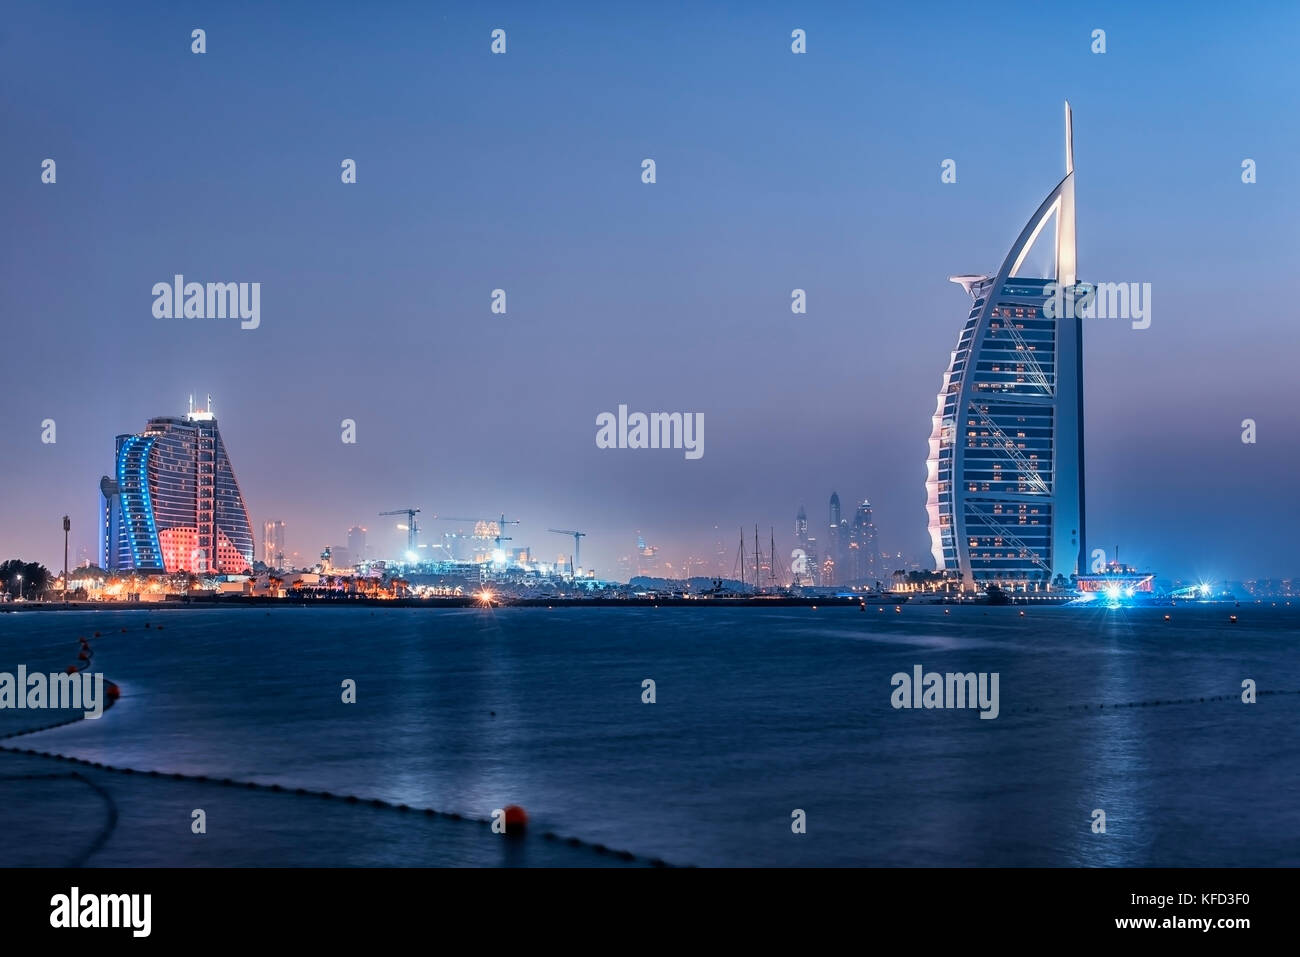 Dubai city viewed from the Palm Jumeirah - Stock Image